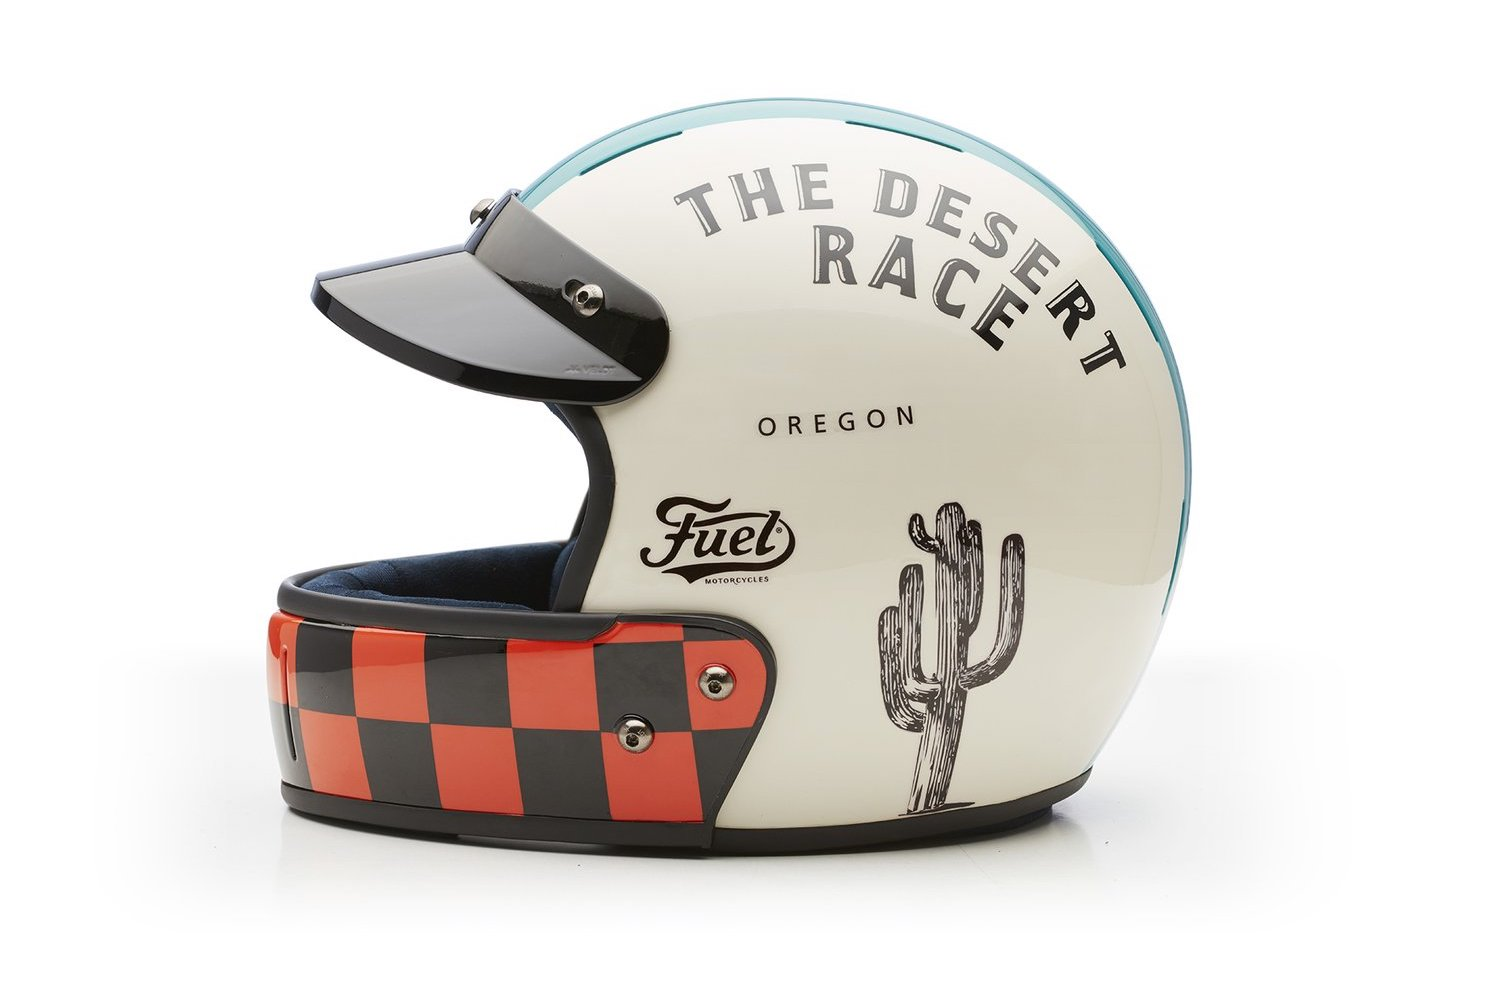 Ebay Motors Motorcycles >> Veldt Helmets - The Desert Race x Fuel Motorcycles Limited ...